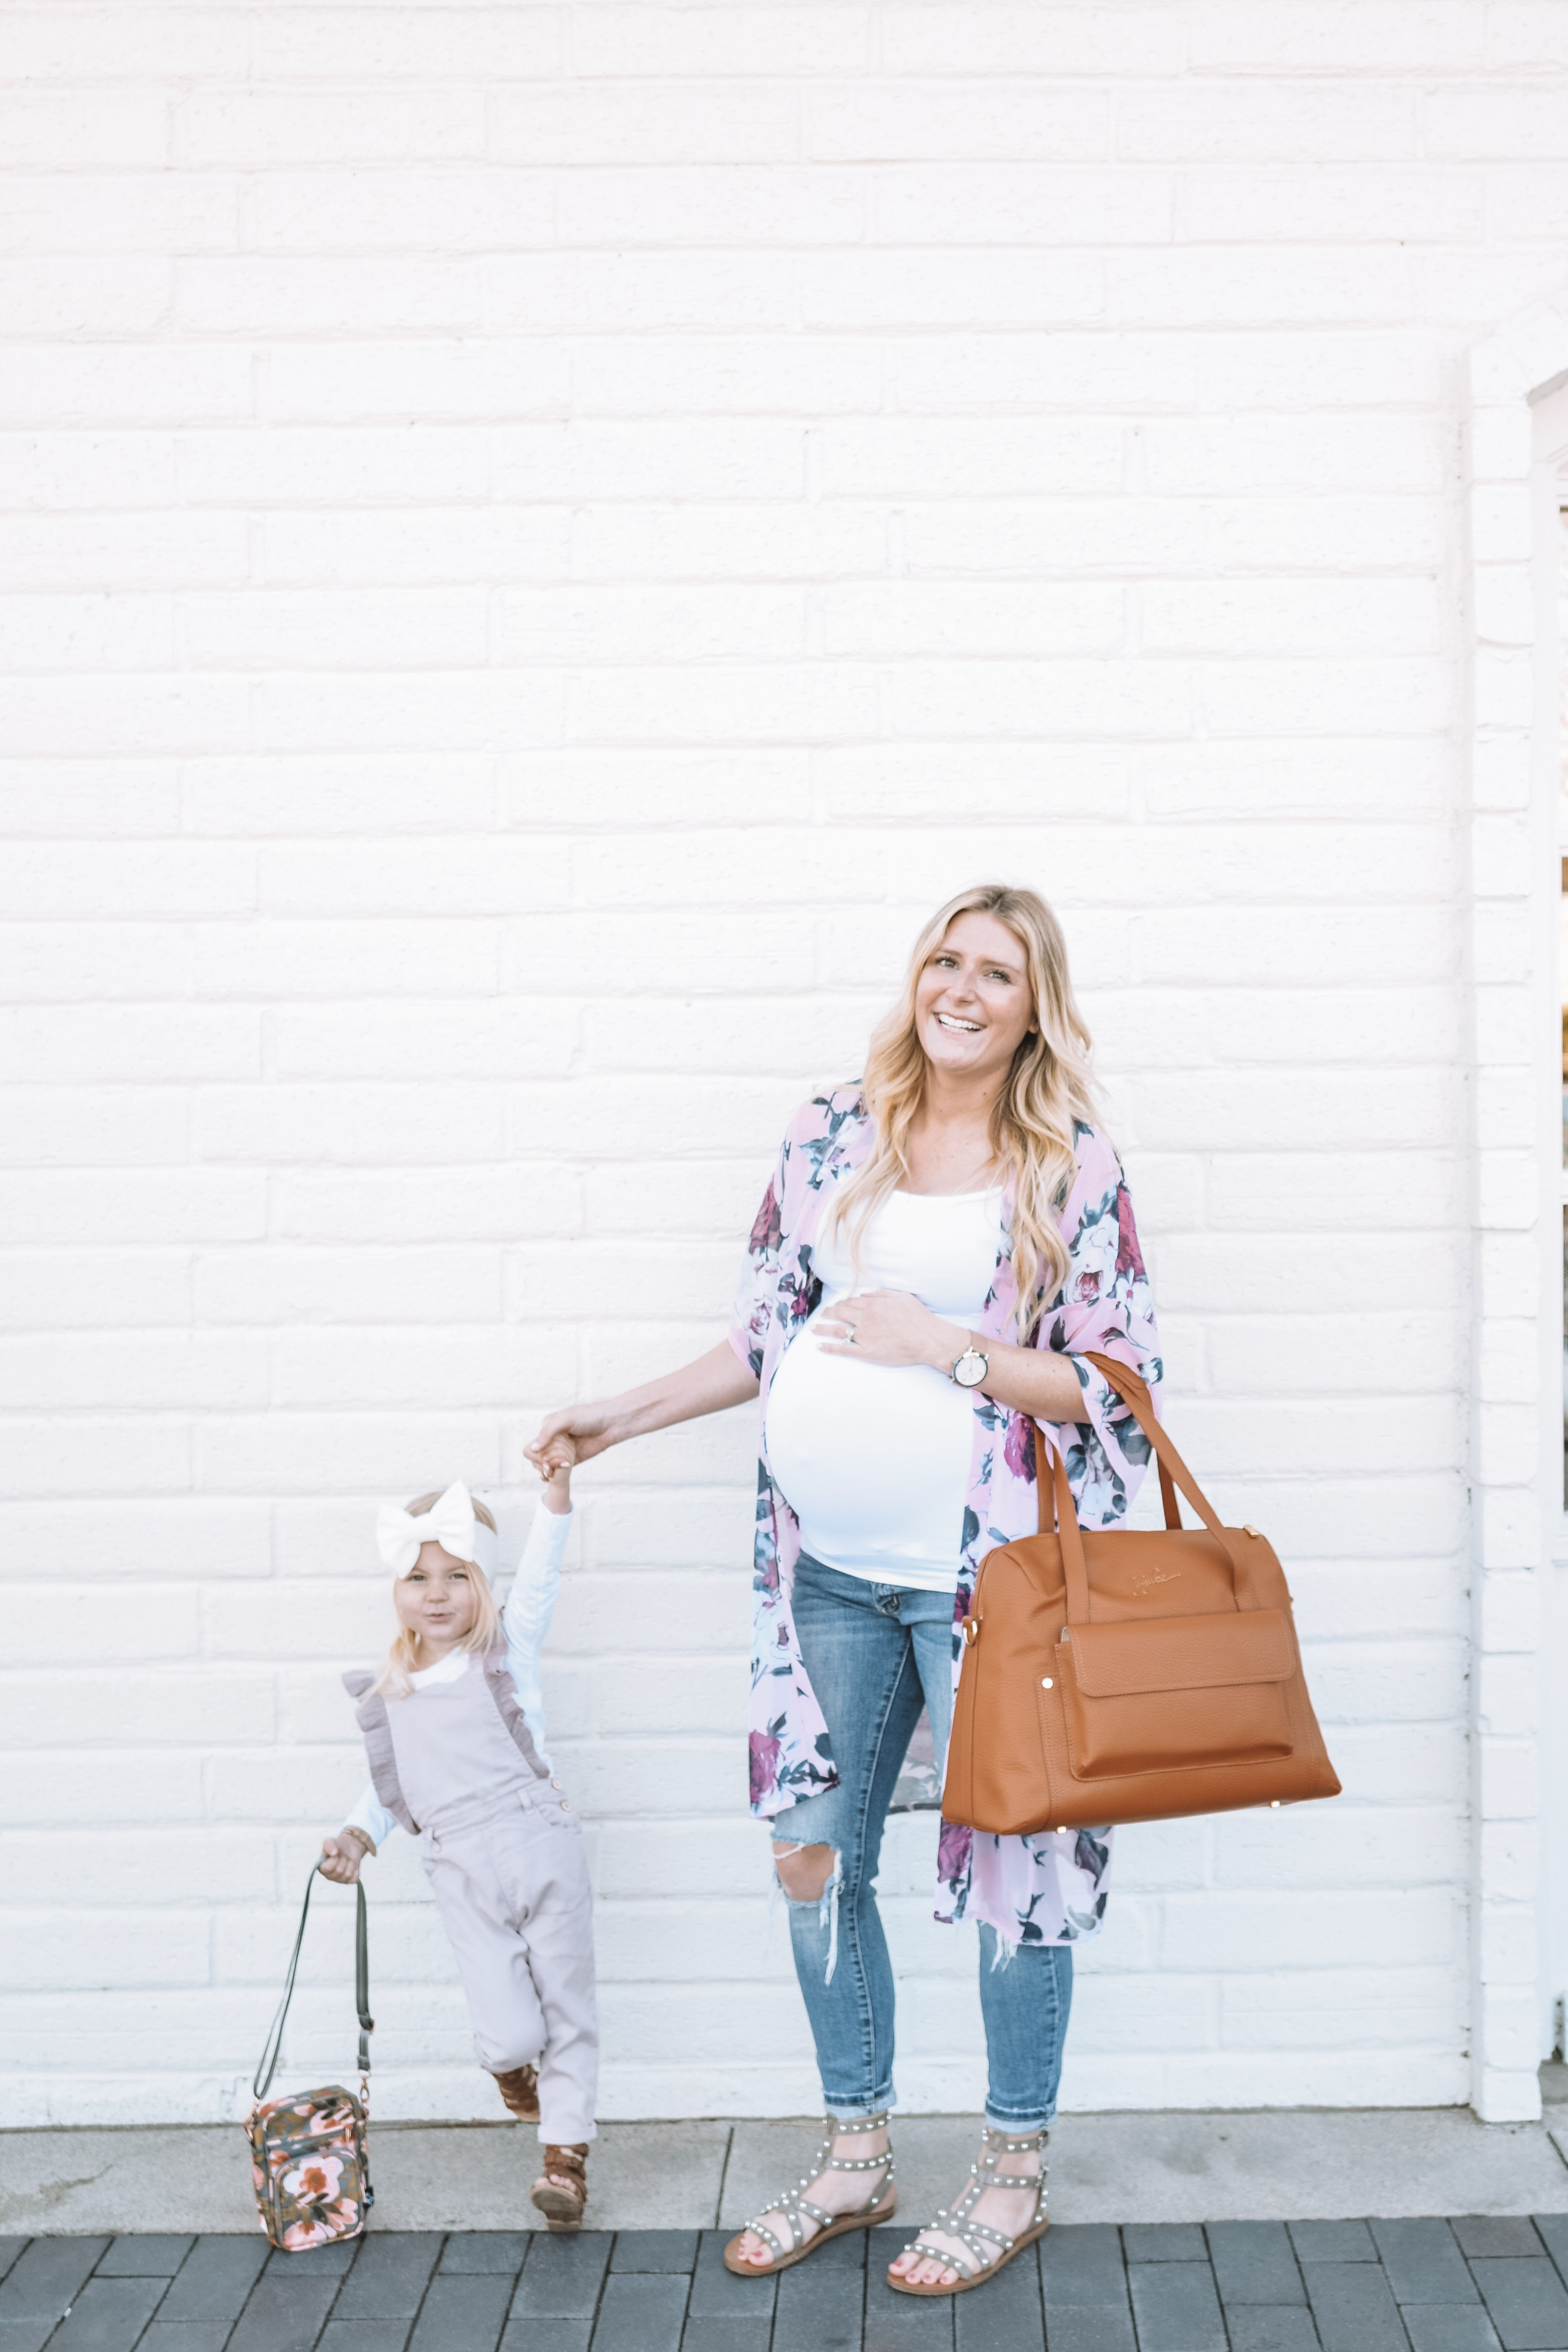 Mommy and Me Clothes - Cute Leather Diaper Bags - The Overwhelmed Mommy Blogger